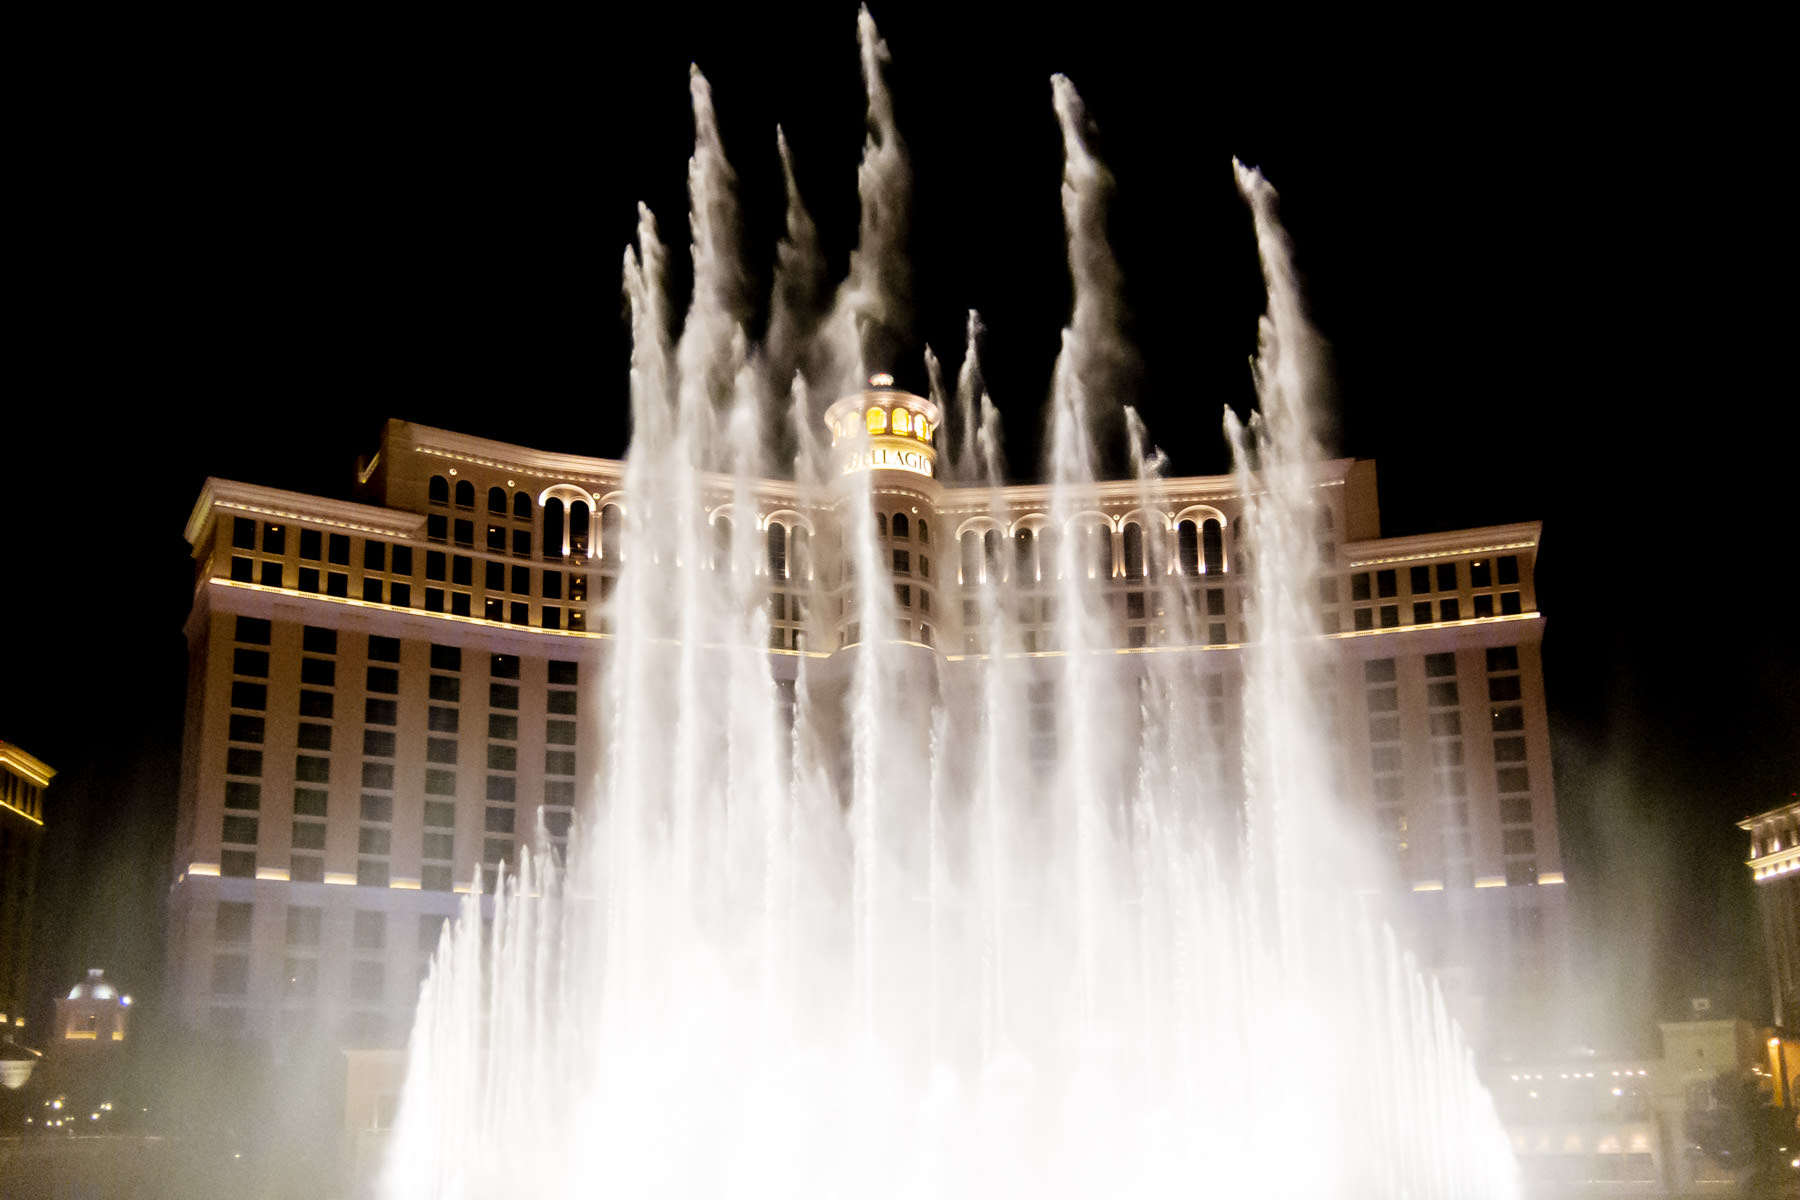 The Fountains at the Bellagio, Las Vegas, lie in an 8-acre man-made lake and consist of over 1200 computer-controlled nozzles, some of which can shoot water over 460 feet into the air.